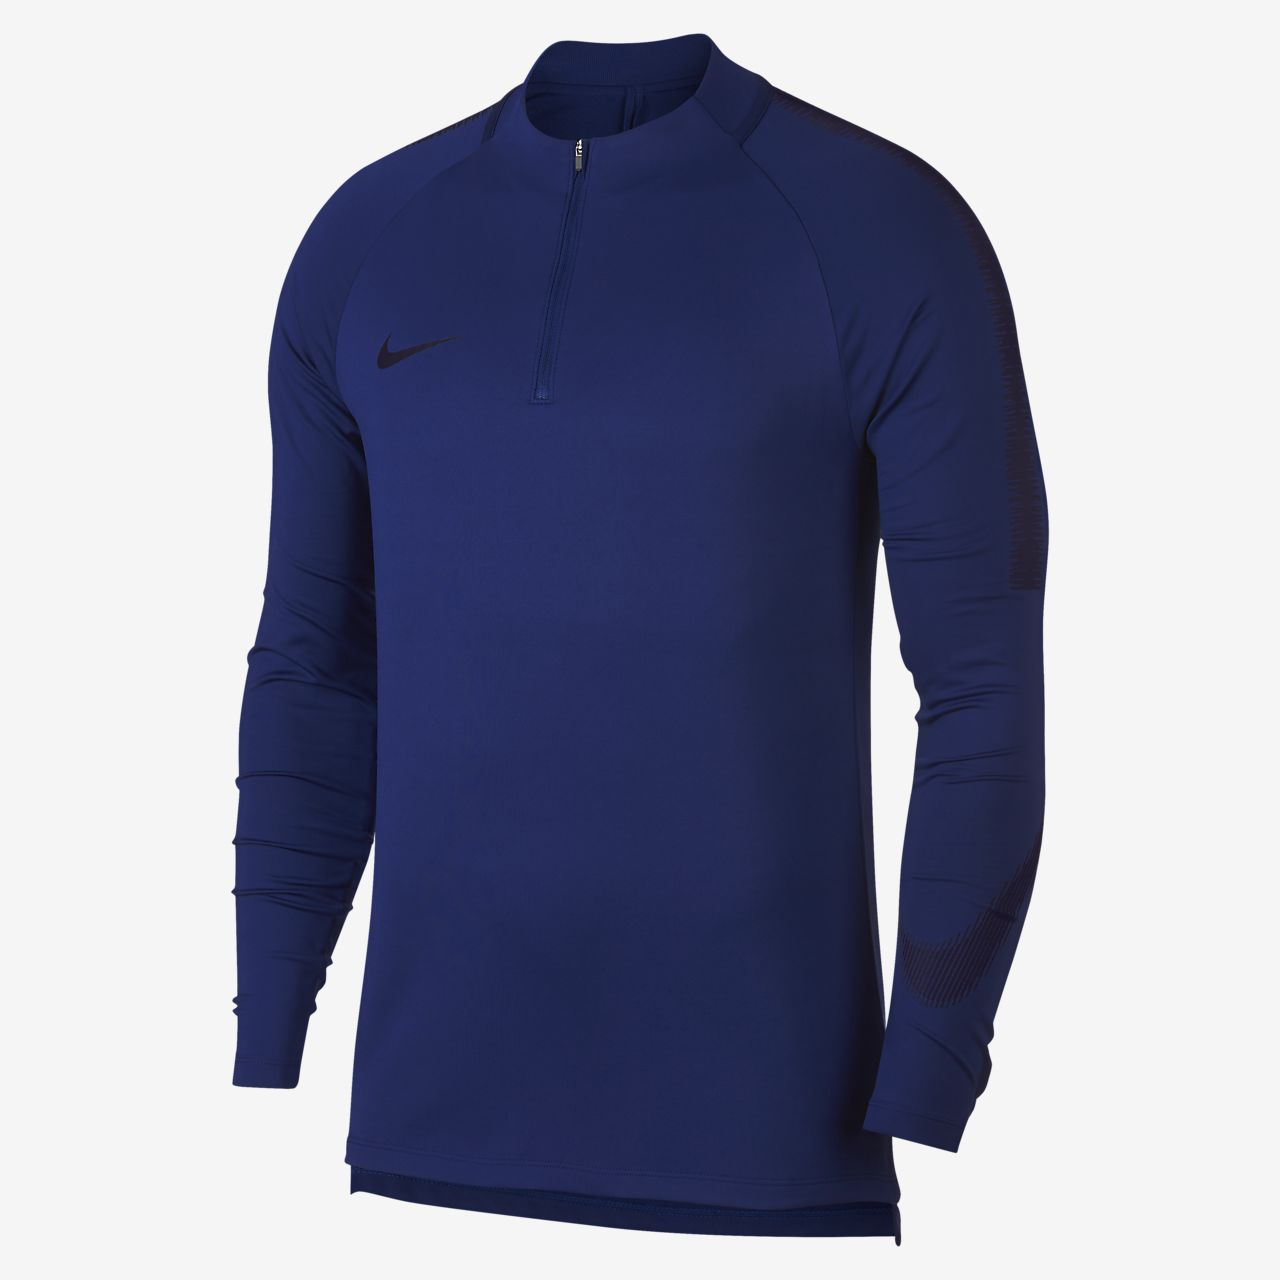 e8539090b457 Nike Dri-FIT Squad Drill Men s Long-Sleeve Football Top. Nike.com GB